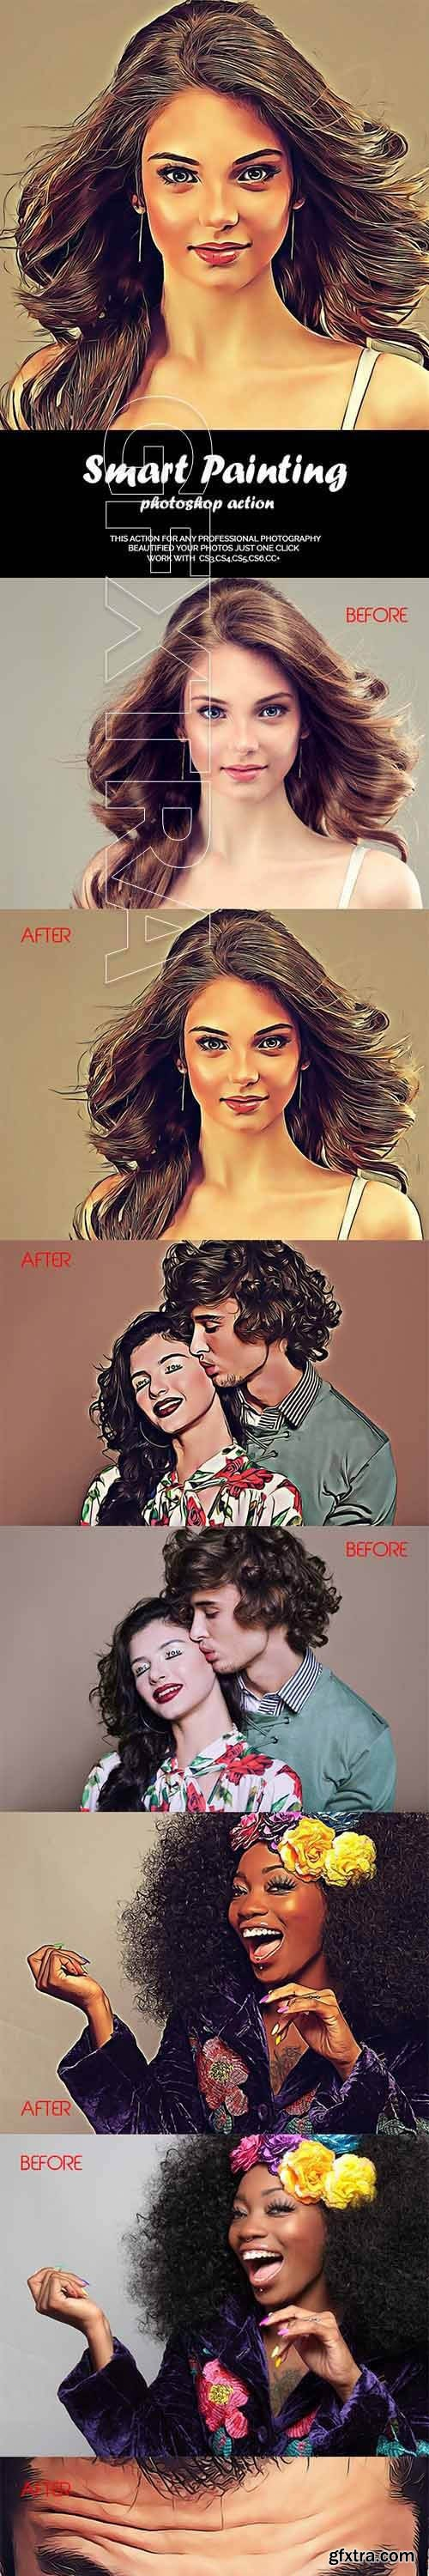 GraphicRiver - Smart Painting Photoshop Action 21139558